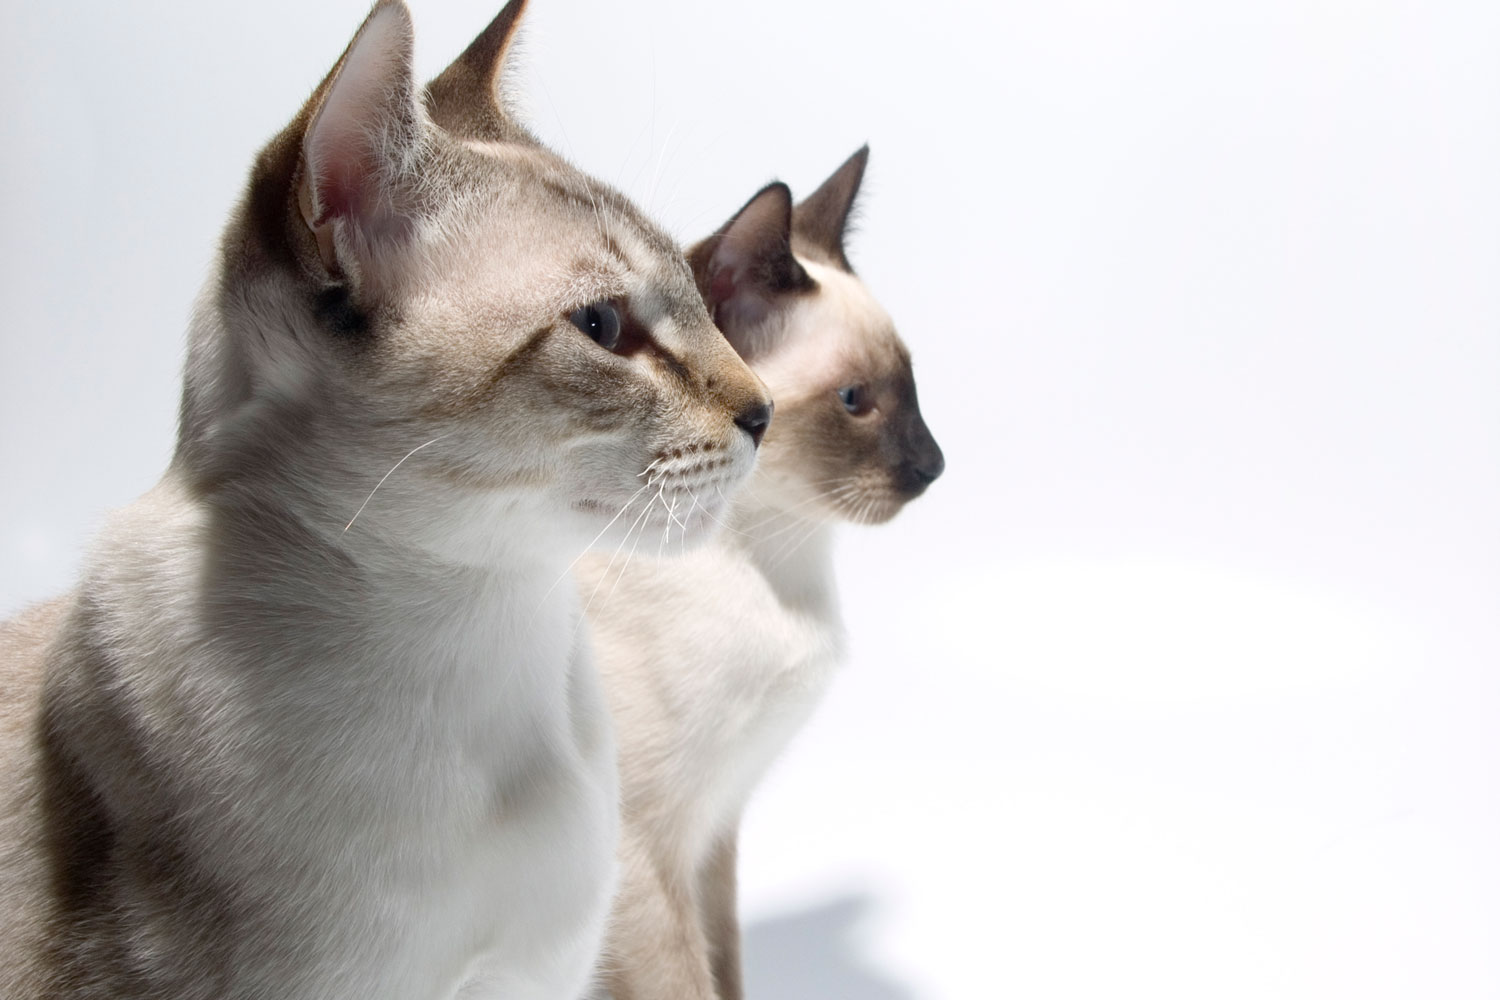 Tw Siamese cats staring at something on a white background